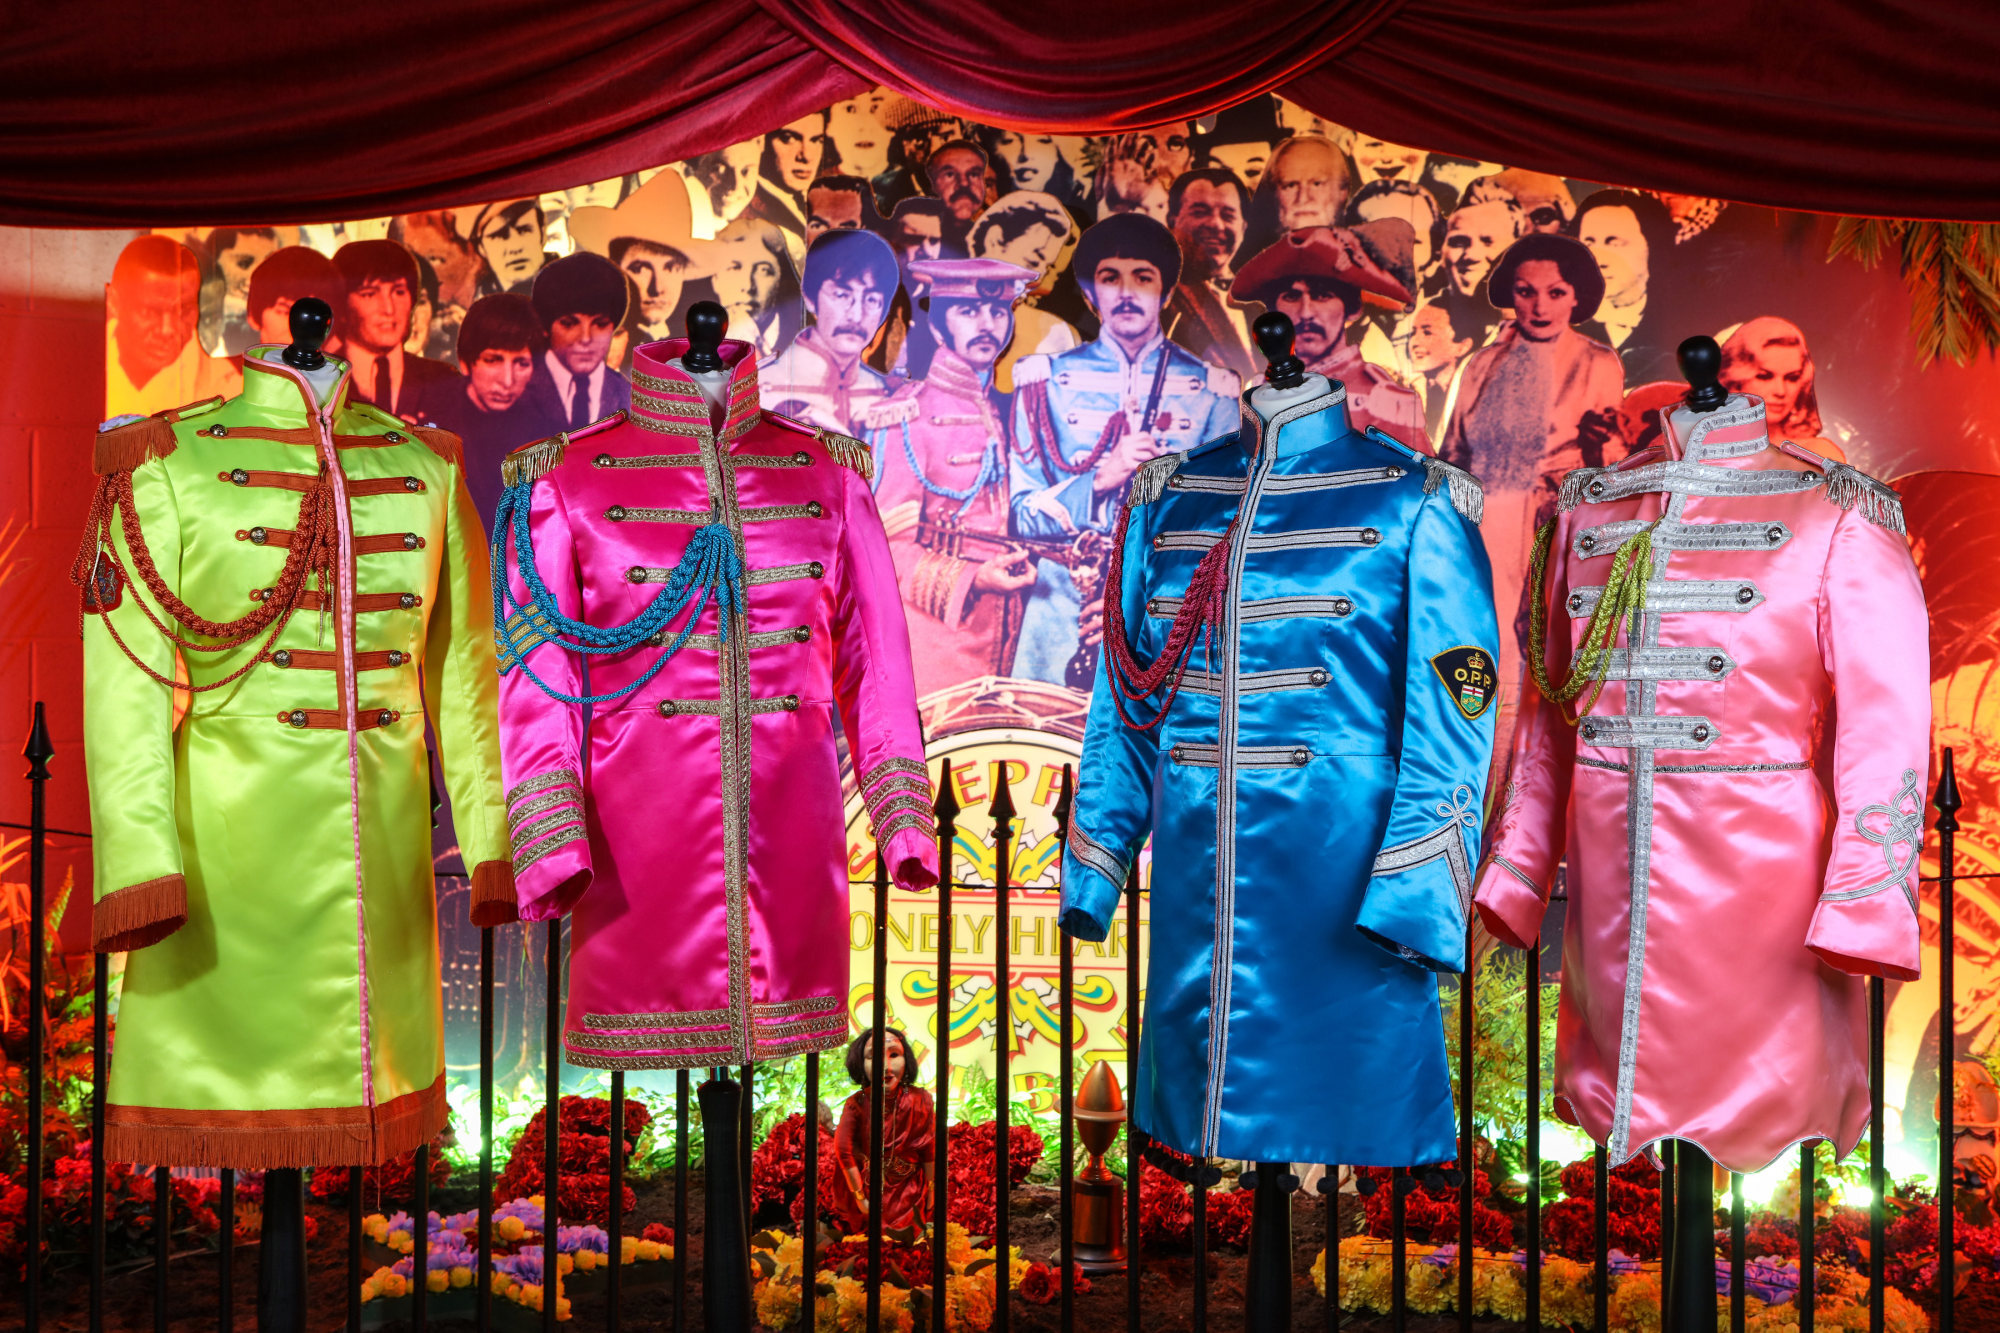 The Beatles Story exhibition in Liverpool is to reopen in May. Photo: University of Liverpool/The Beatles Story/Red Door News Hong Kong